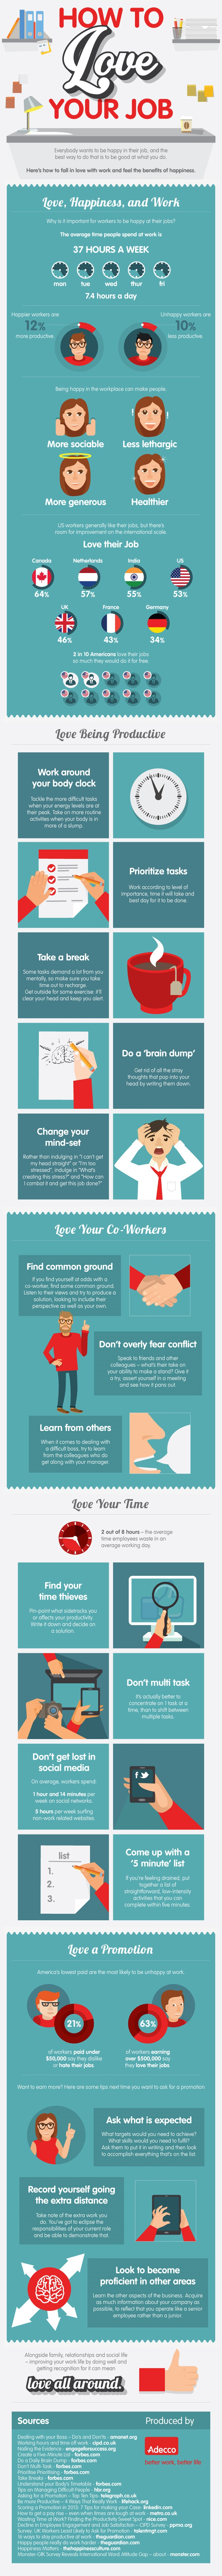 07 how-to-love-your-job_53021bec2b01d